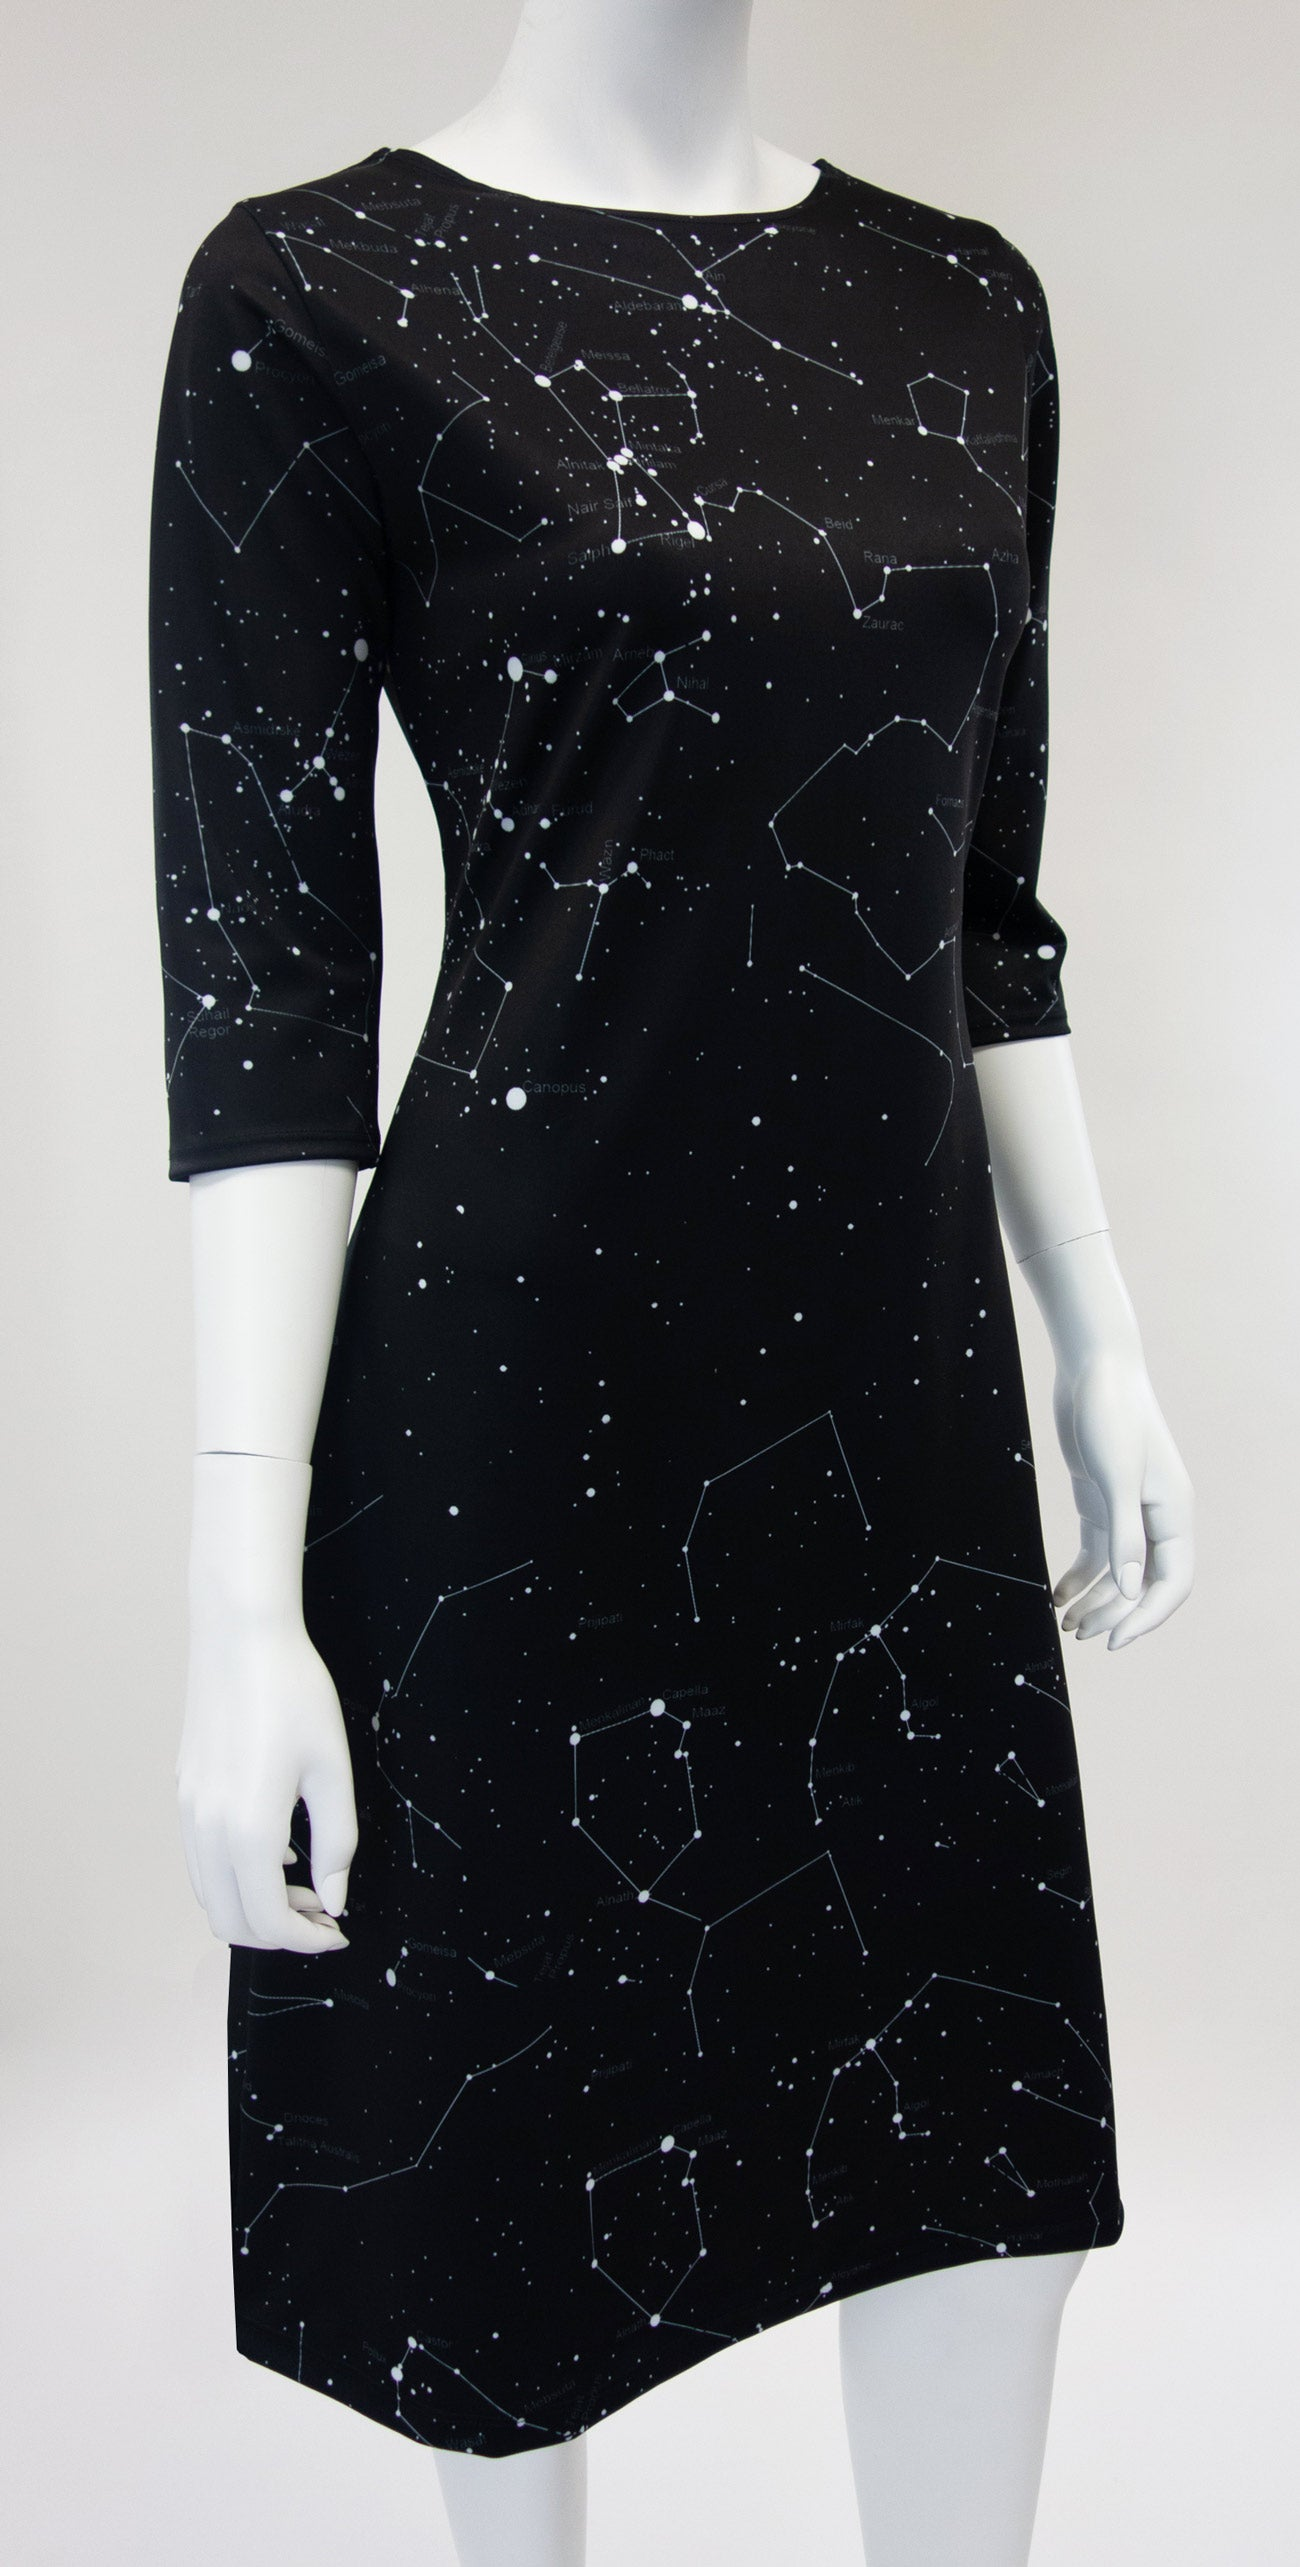 Black Constellation Star Print Dress FRONT